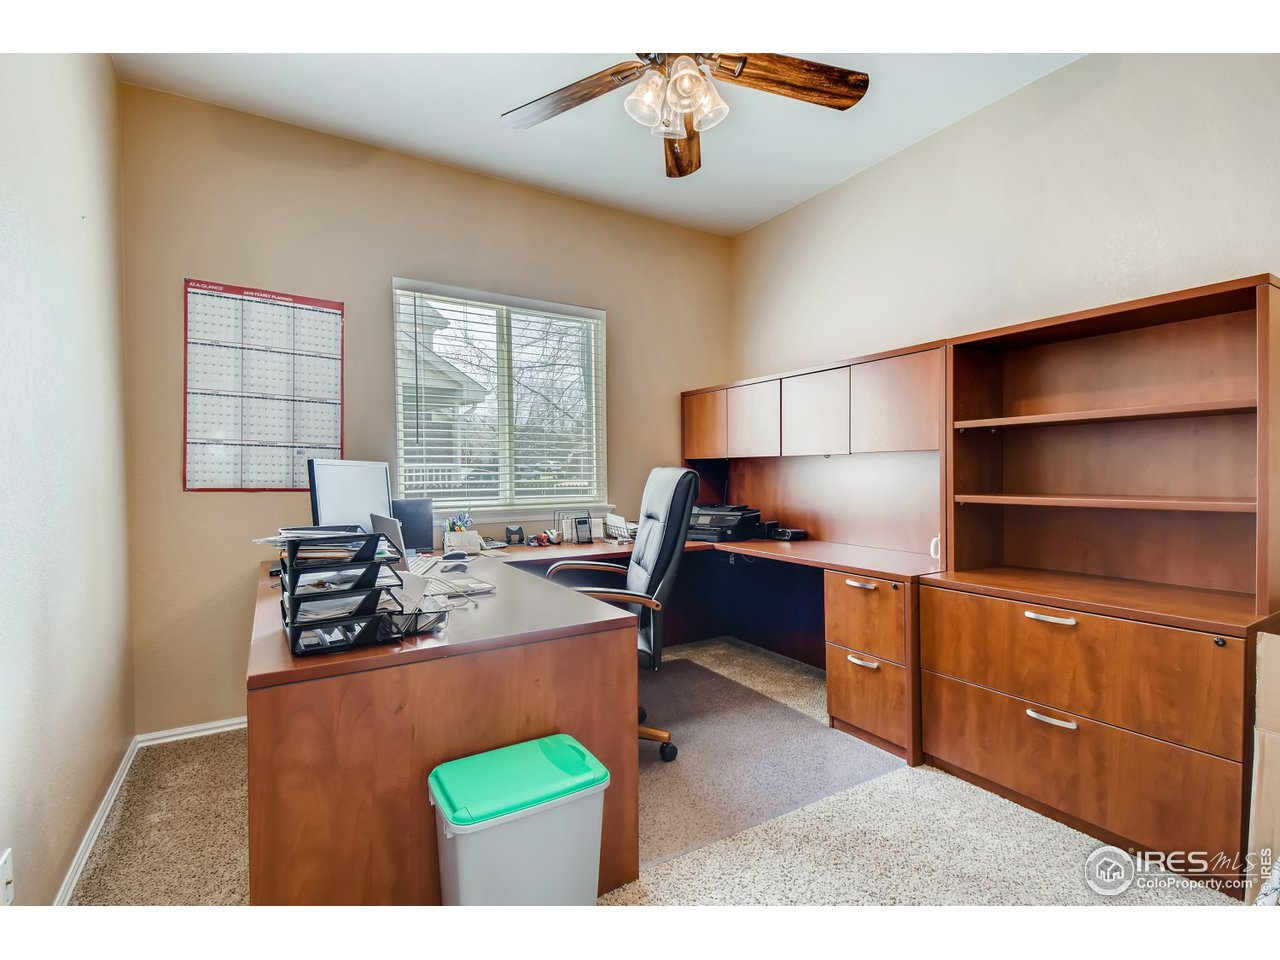 Basement rec room with lots of closets and storage.